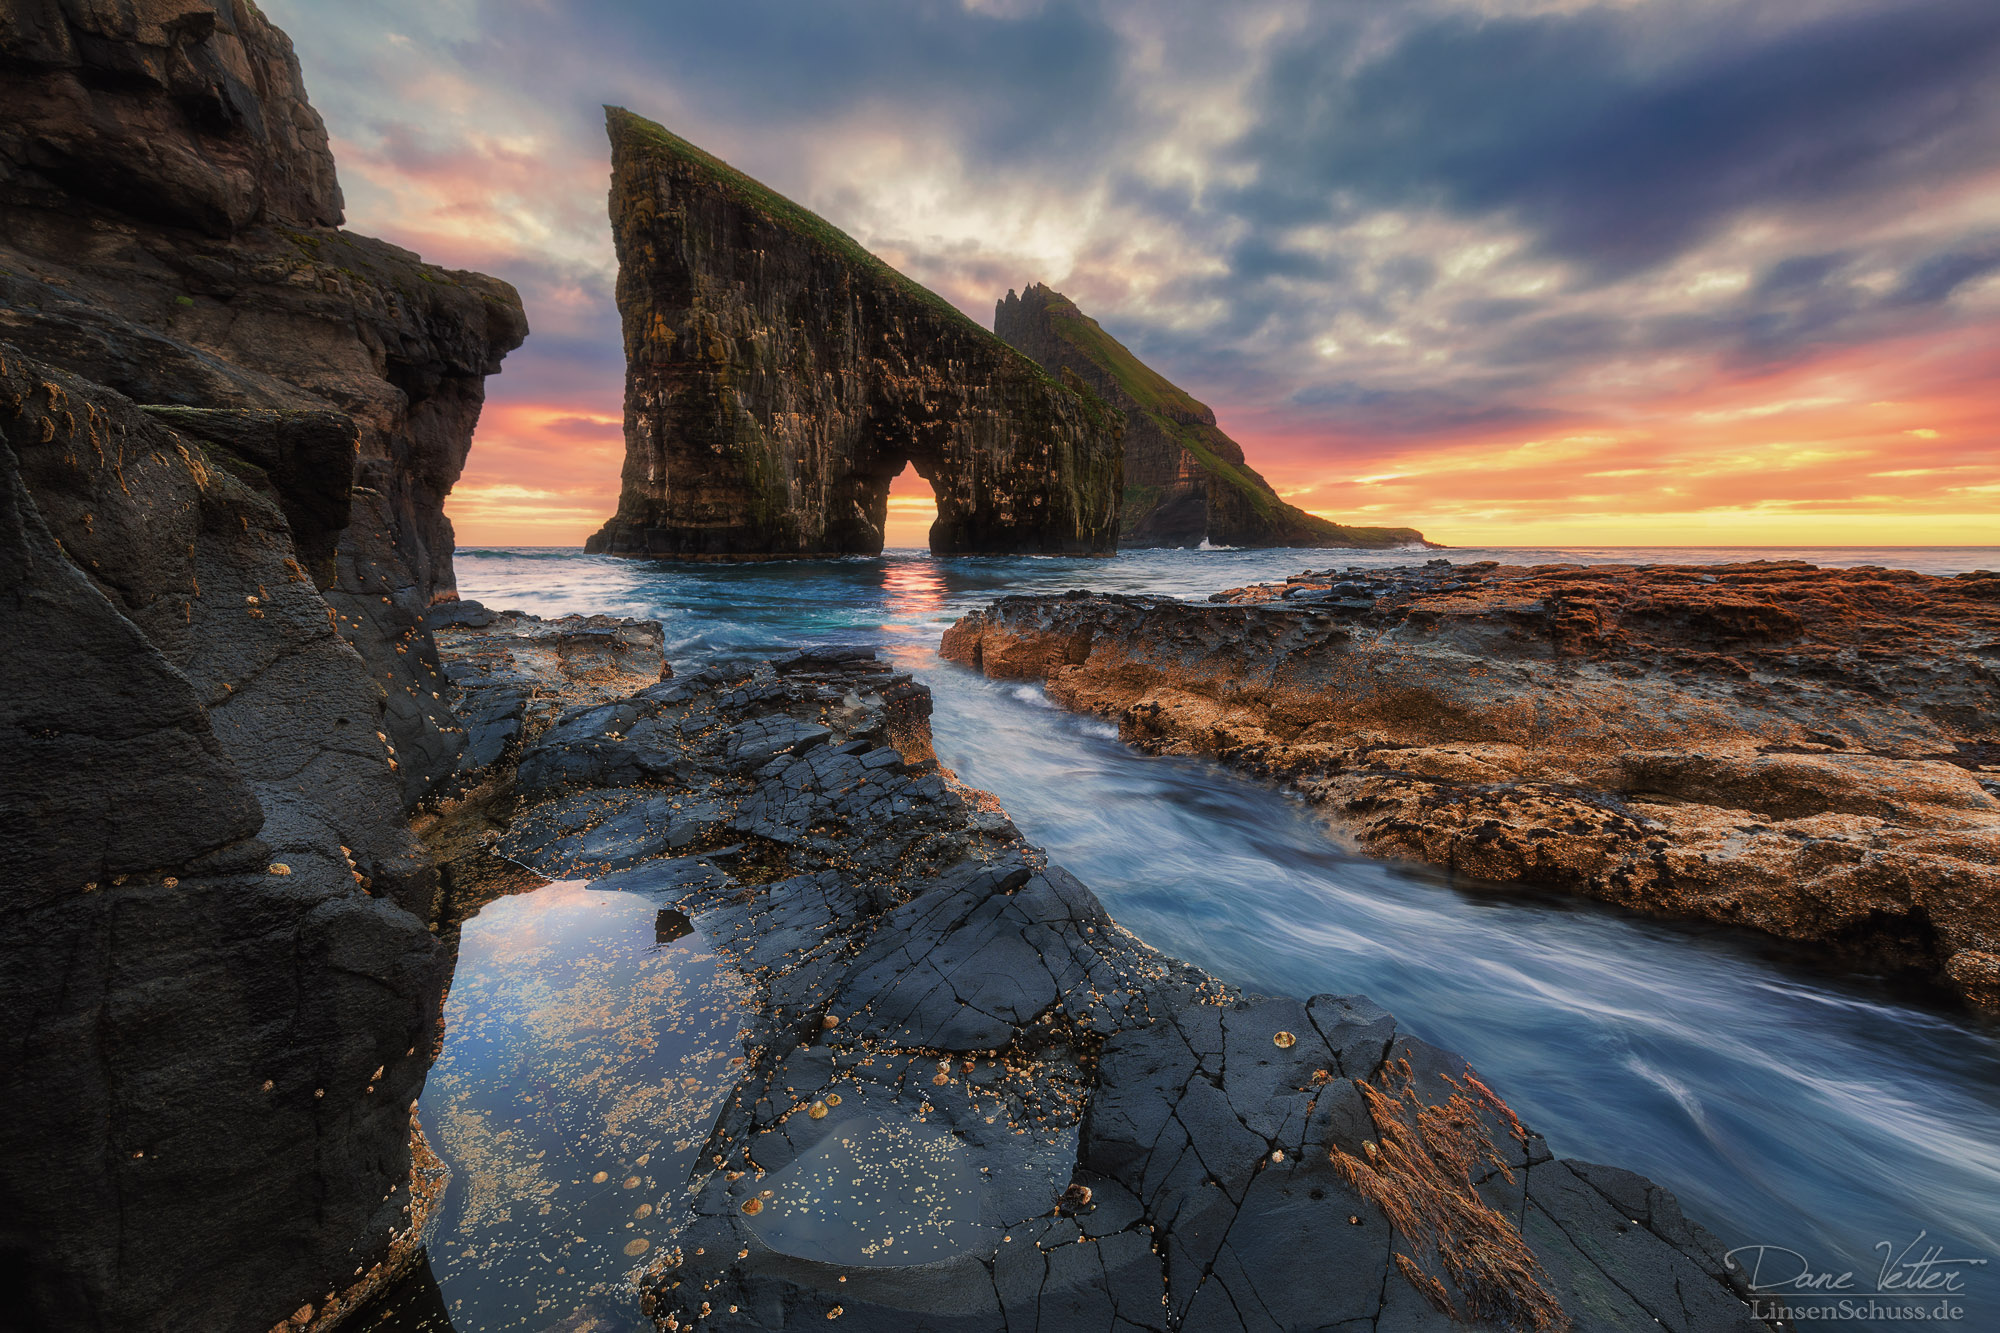 img/content/the_rock_arch_in_the_sea_by_linsenschuss-dby78ku.jpg